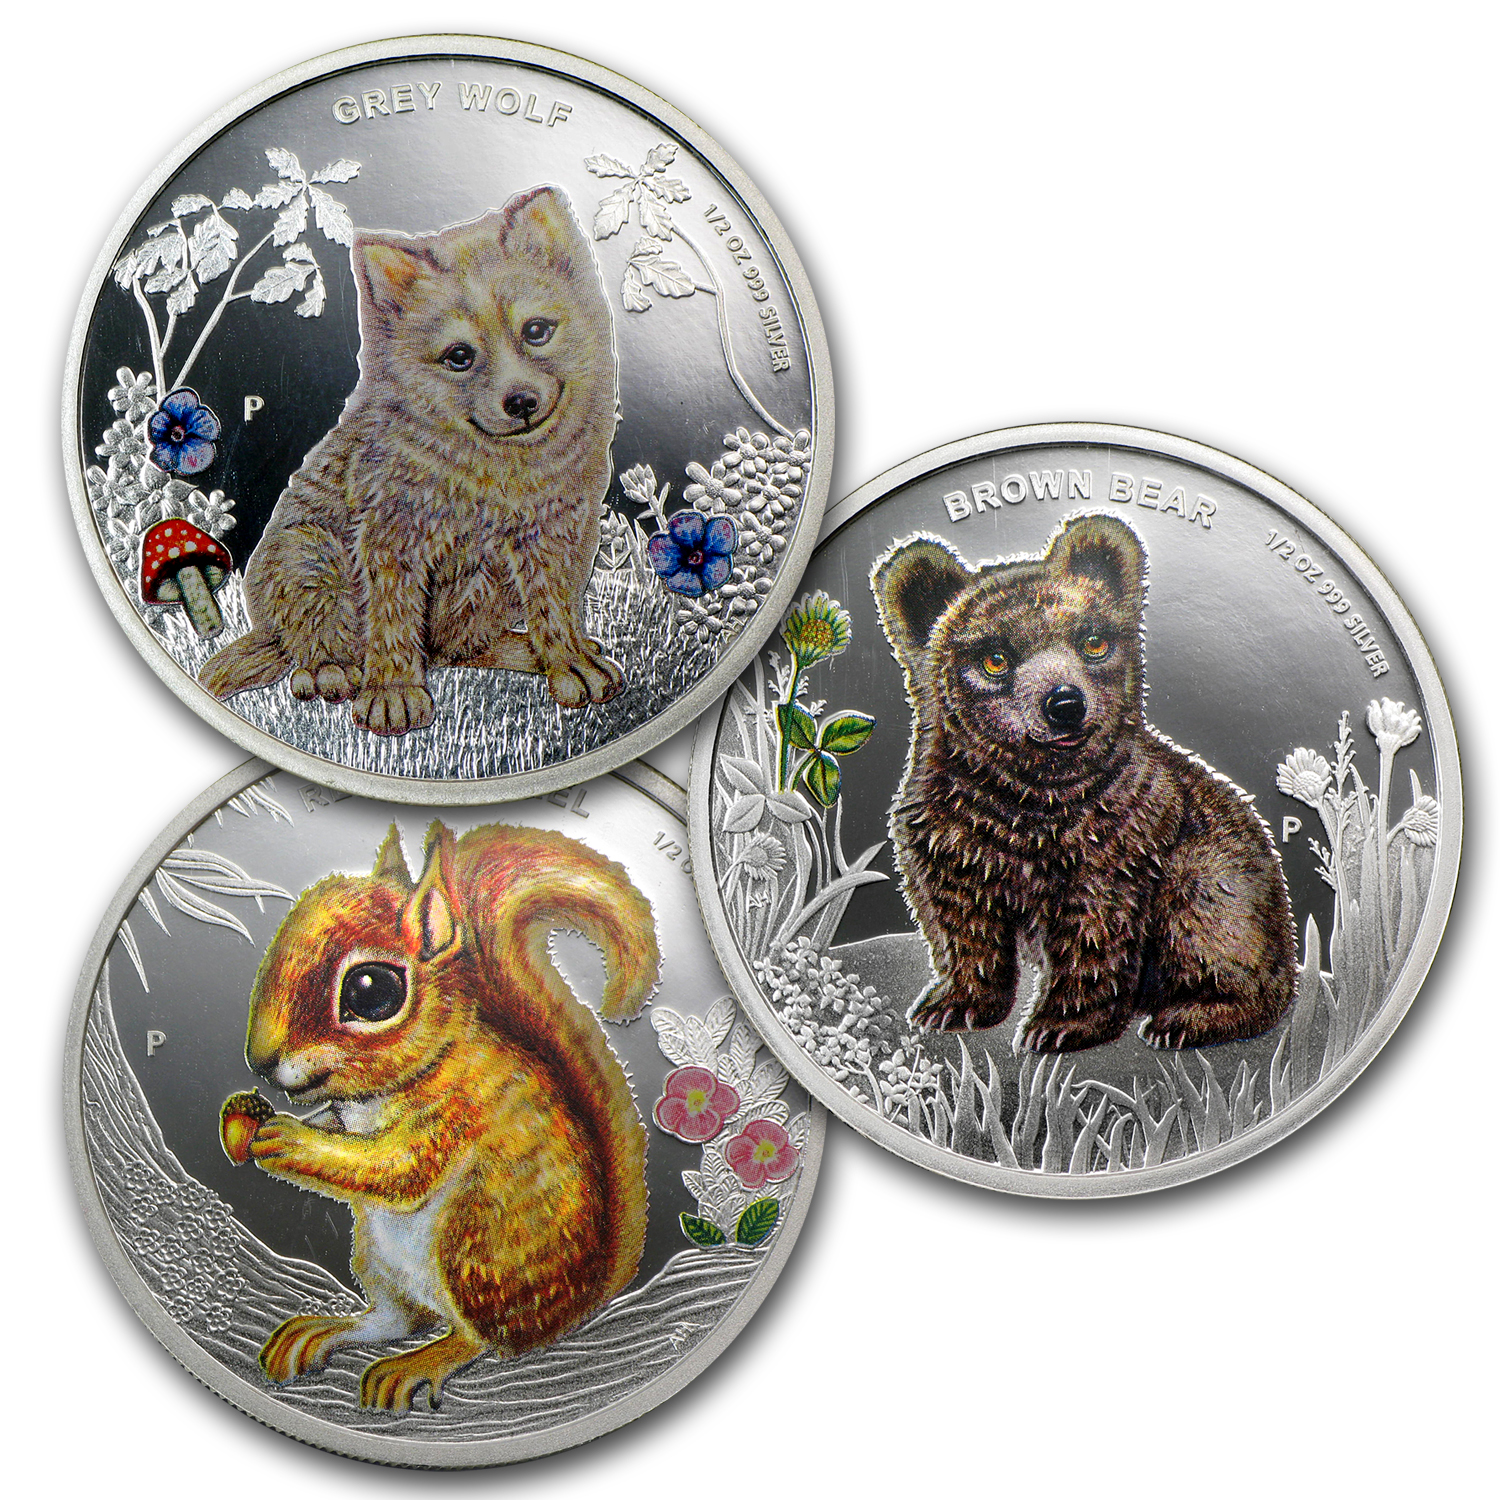 2013 Tuvalu 3-Coin 1/2 oz Silver Forest Babies Proof Set